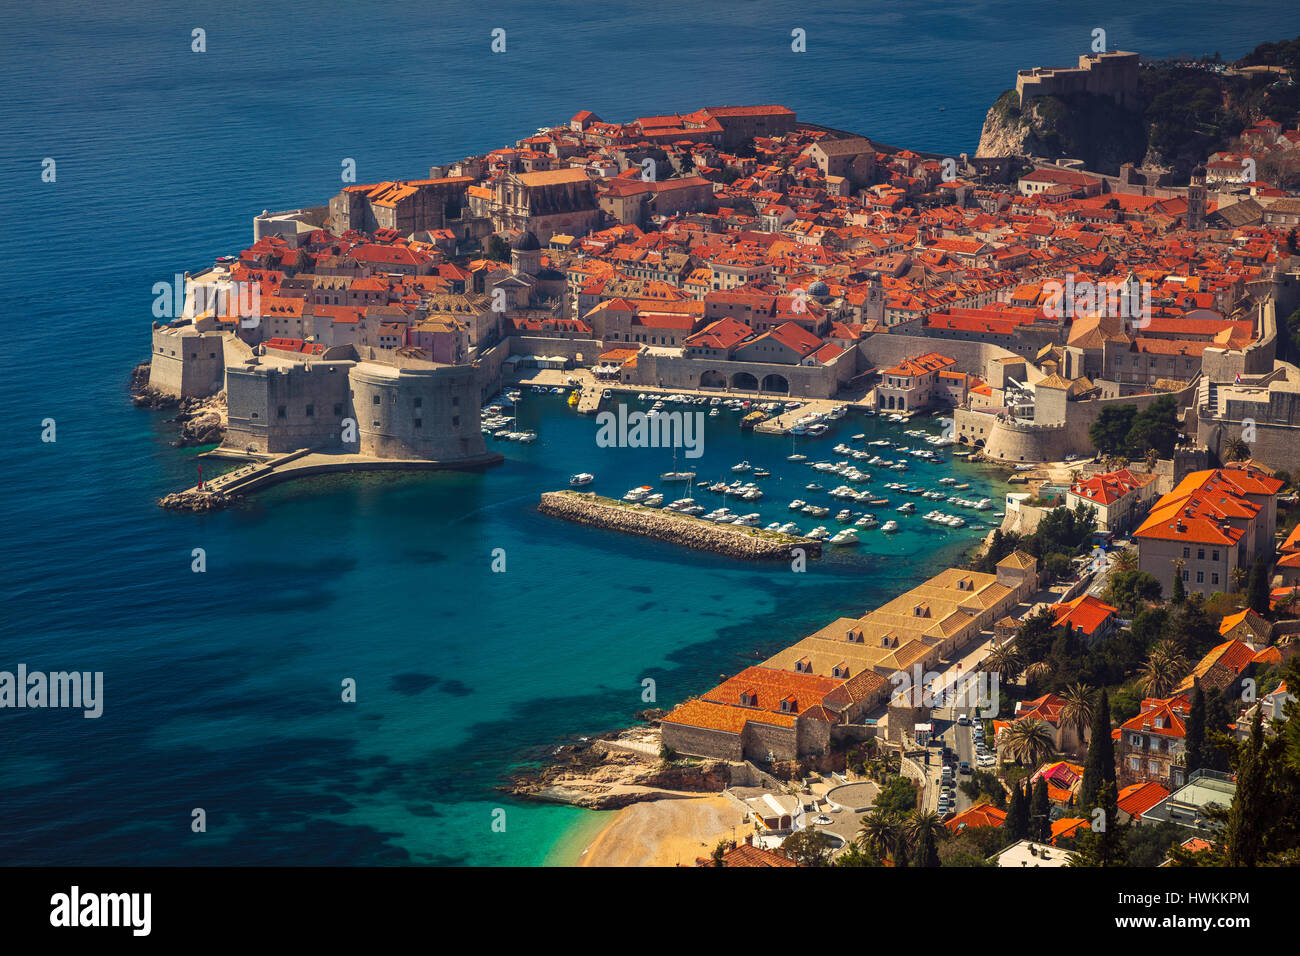 Dubrovnik, Croatia. Beautiful romantic old town of Dubrovnik during sunny day, Croatia,Europe. - Stock Image